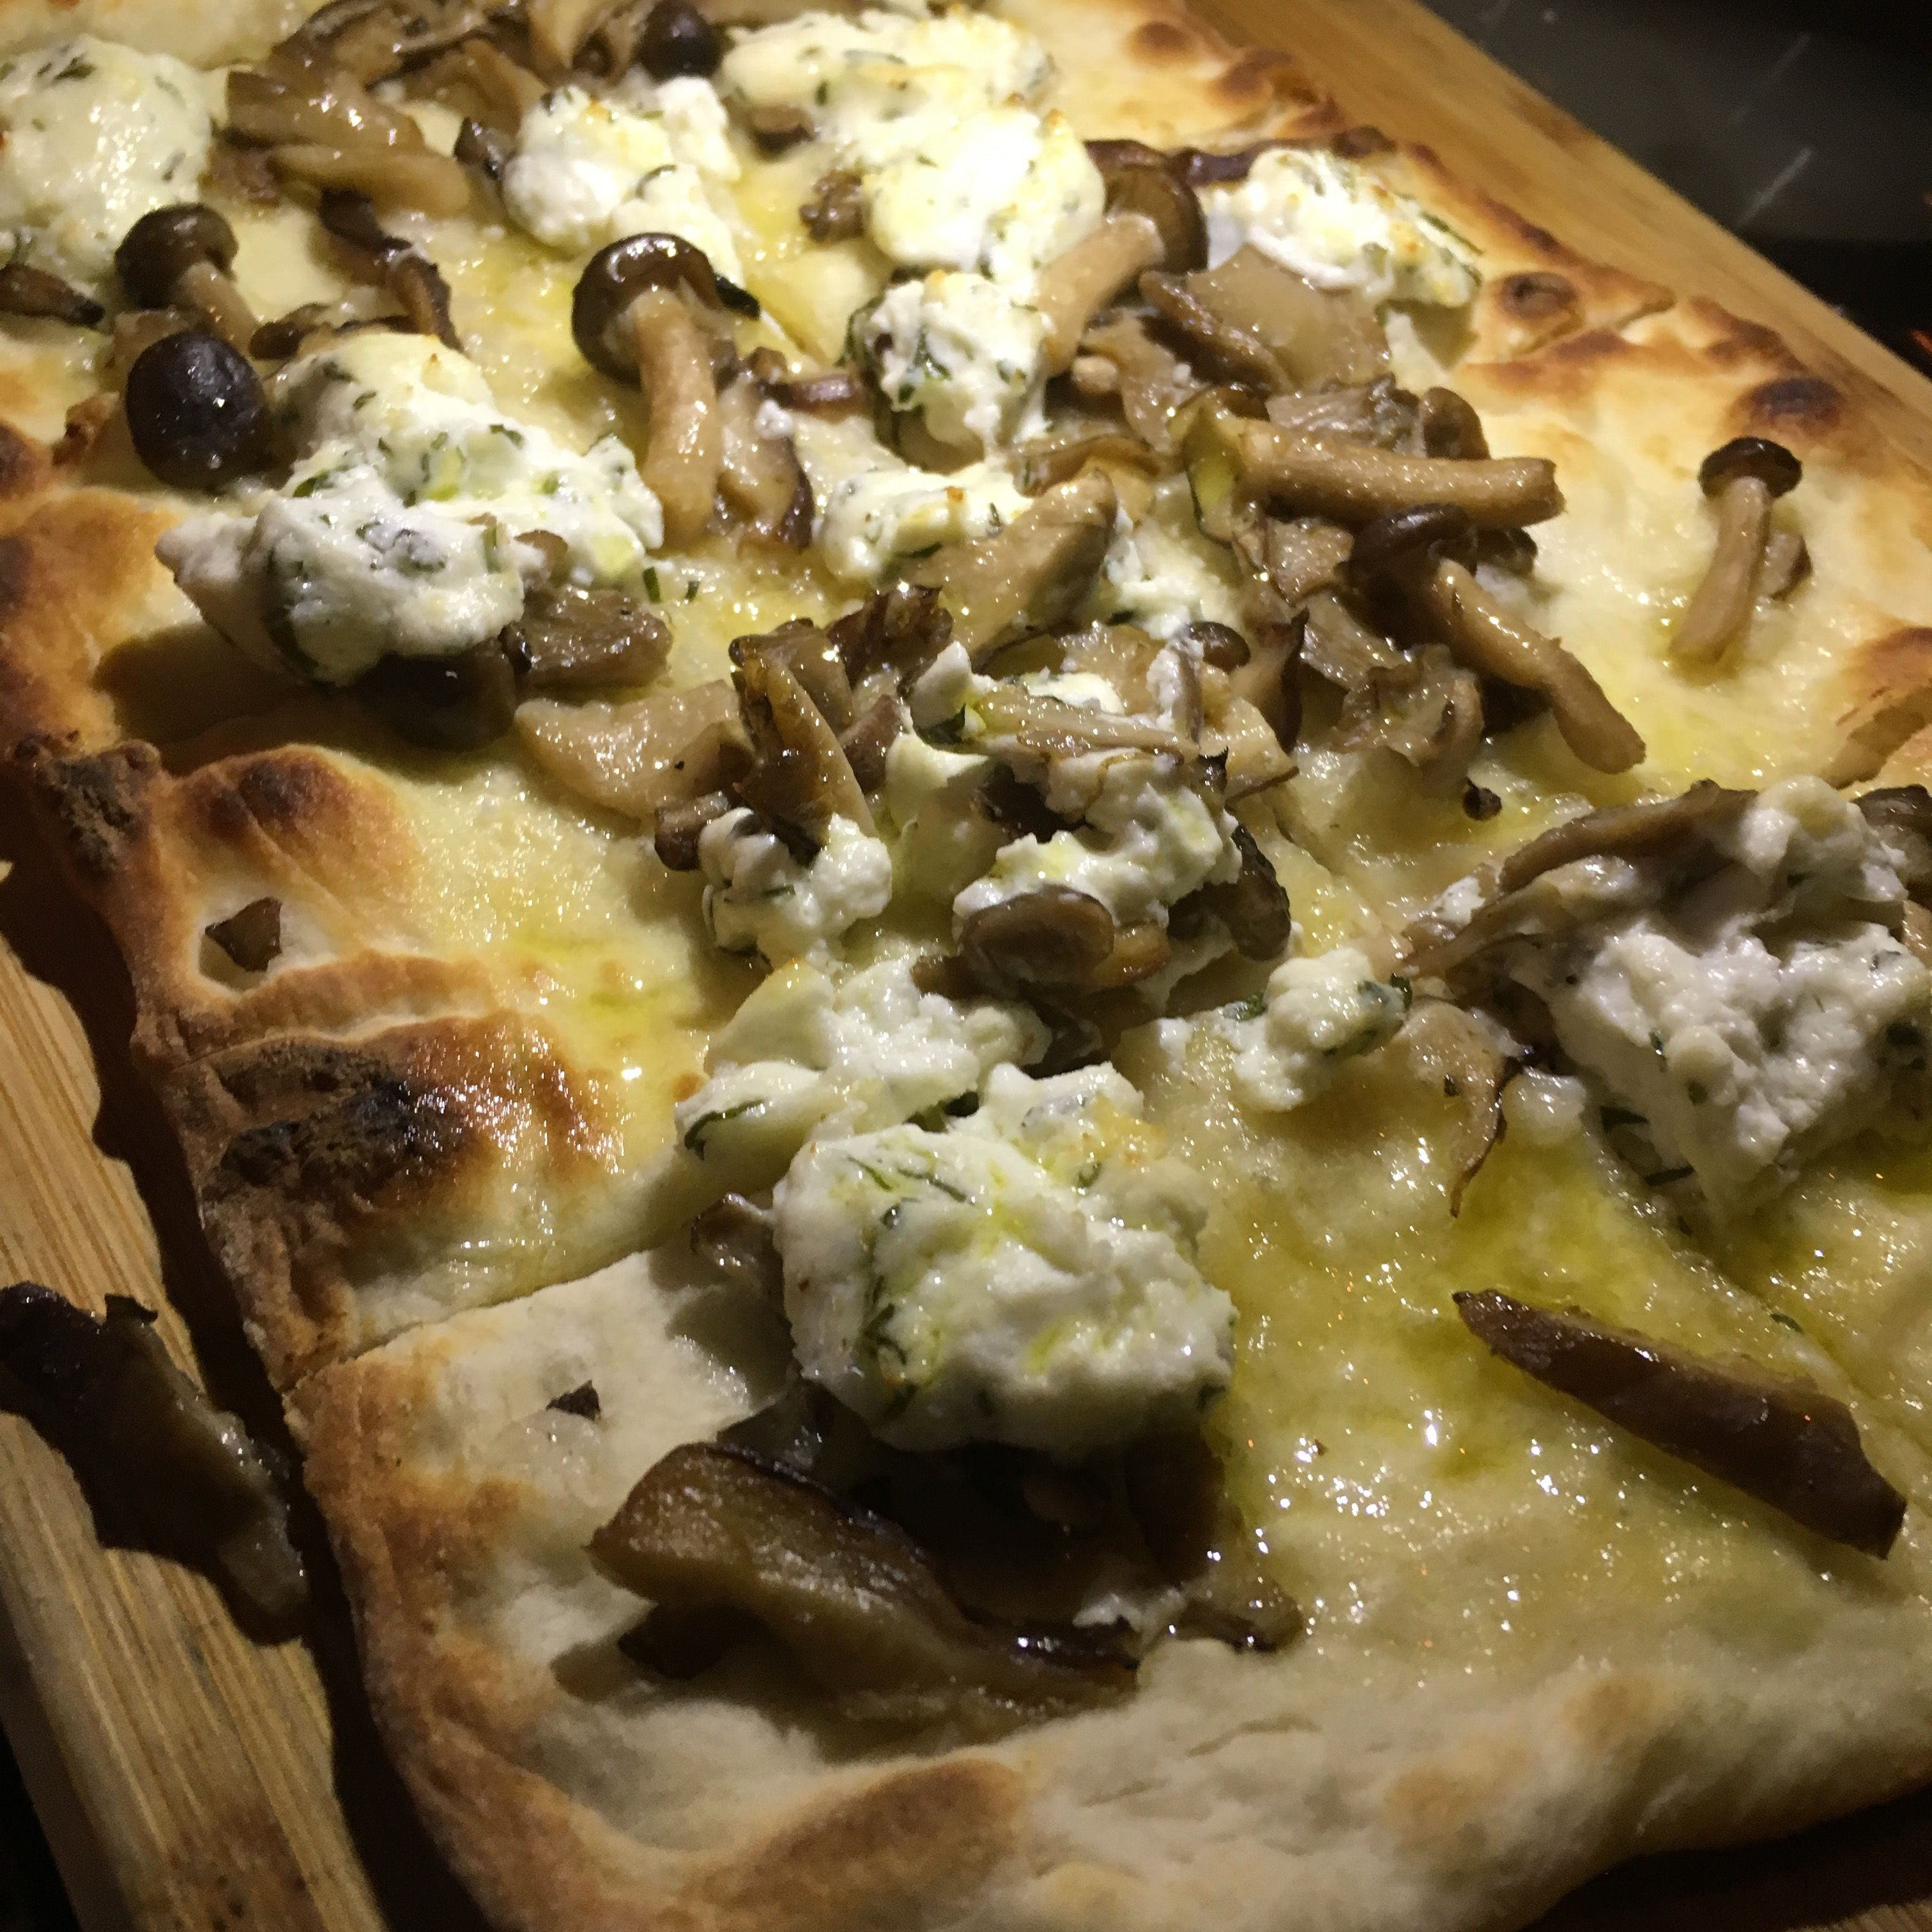 @CopperKettleNYC Copper Kettle Kitchen, Upper East Side, NYC - wild mushrooms and goat cheese flatbread drizzled with truffle oil